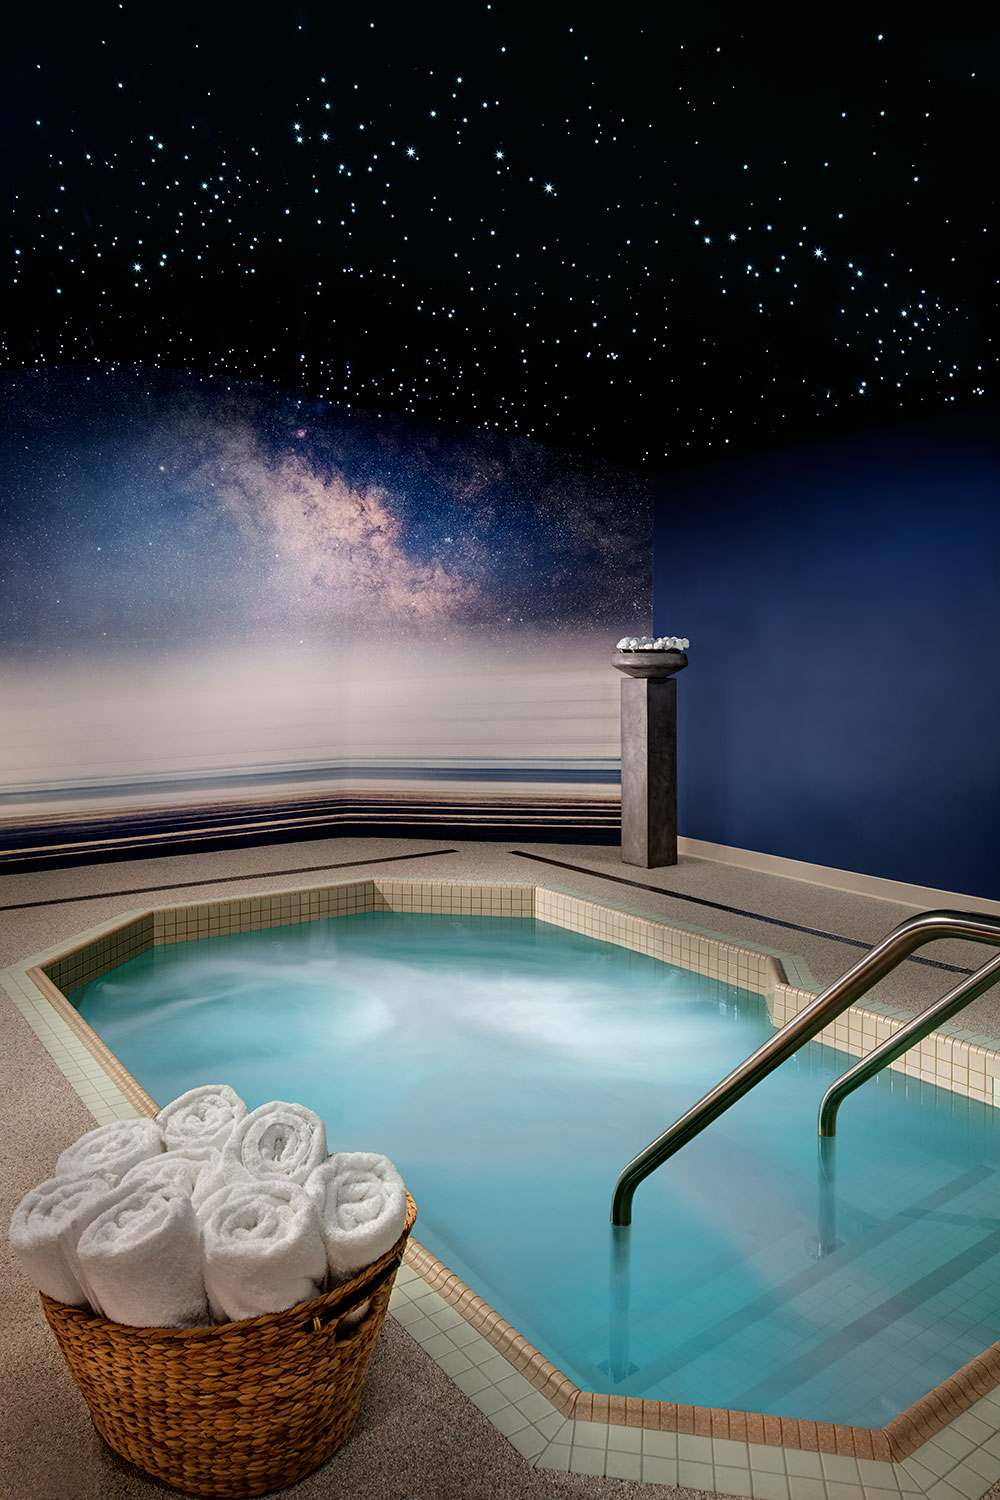 Take a Dip in the Jacuzzi and Relax Under the Stars After Your Treatment! Photo Courtesy of Burke Williams